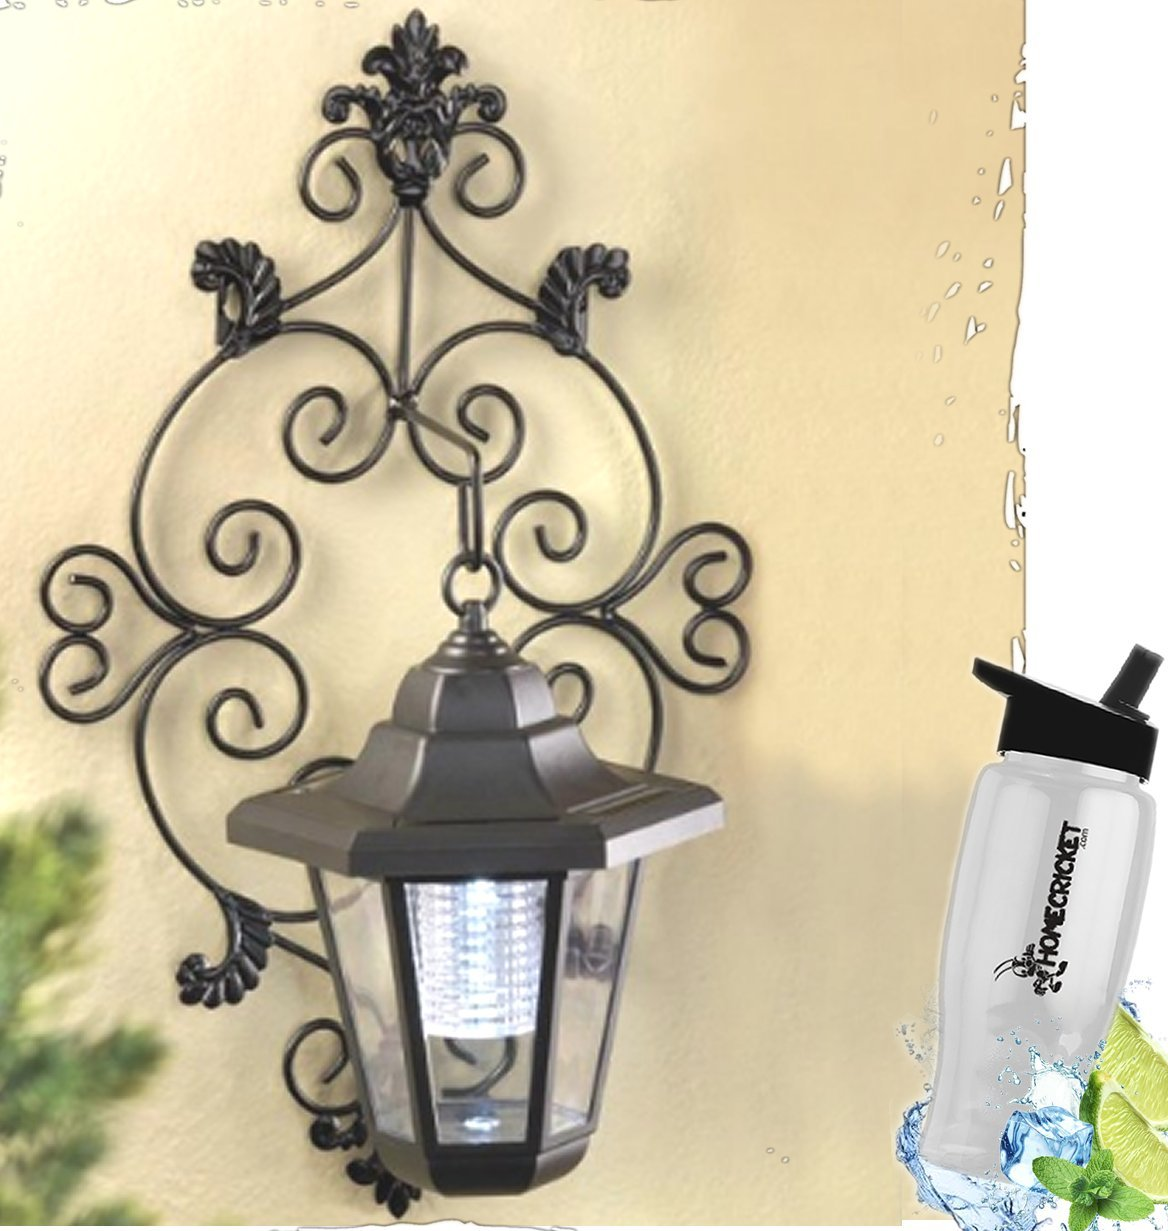 HomeCricket Gift Included- Solar Powered Garden Wall Lantern Decorative Hanging Solar Lights + FREE Bonus Water Bottle by Home Cricket